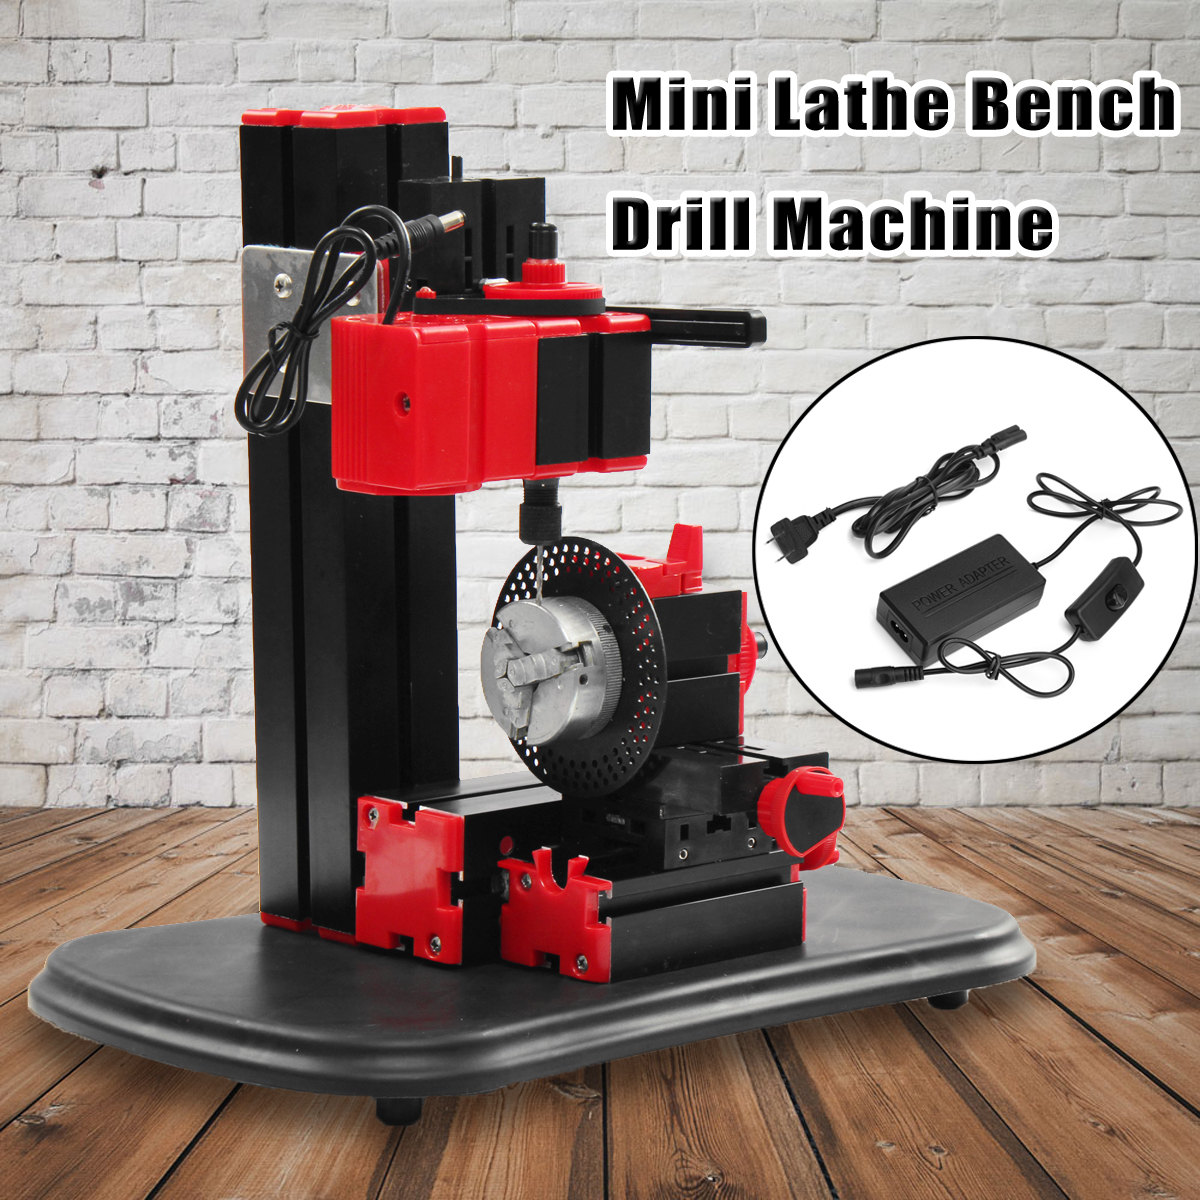 Woodworking Mini Lathe Bench Drill Machine DIY Electric Drill Model Making Tool Lathe Milling Machine Kit 110V-240V 1pcs multifunctional mini bench lathe machine electric grinder polisher drill saw tool 350w 10000 r min